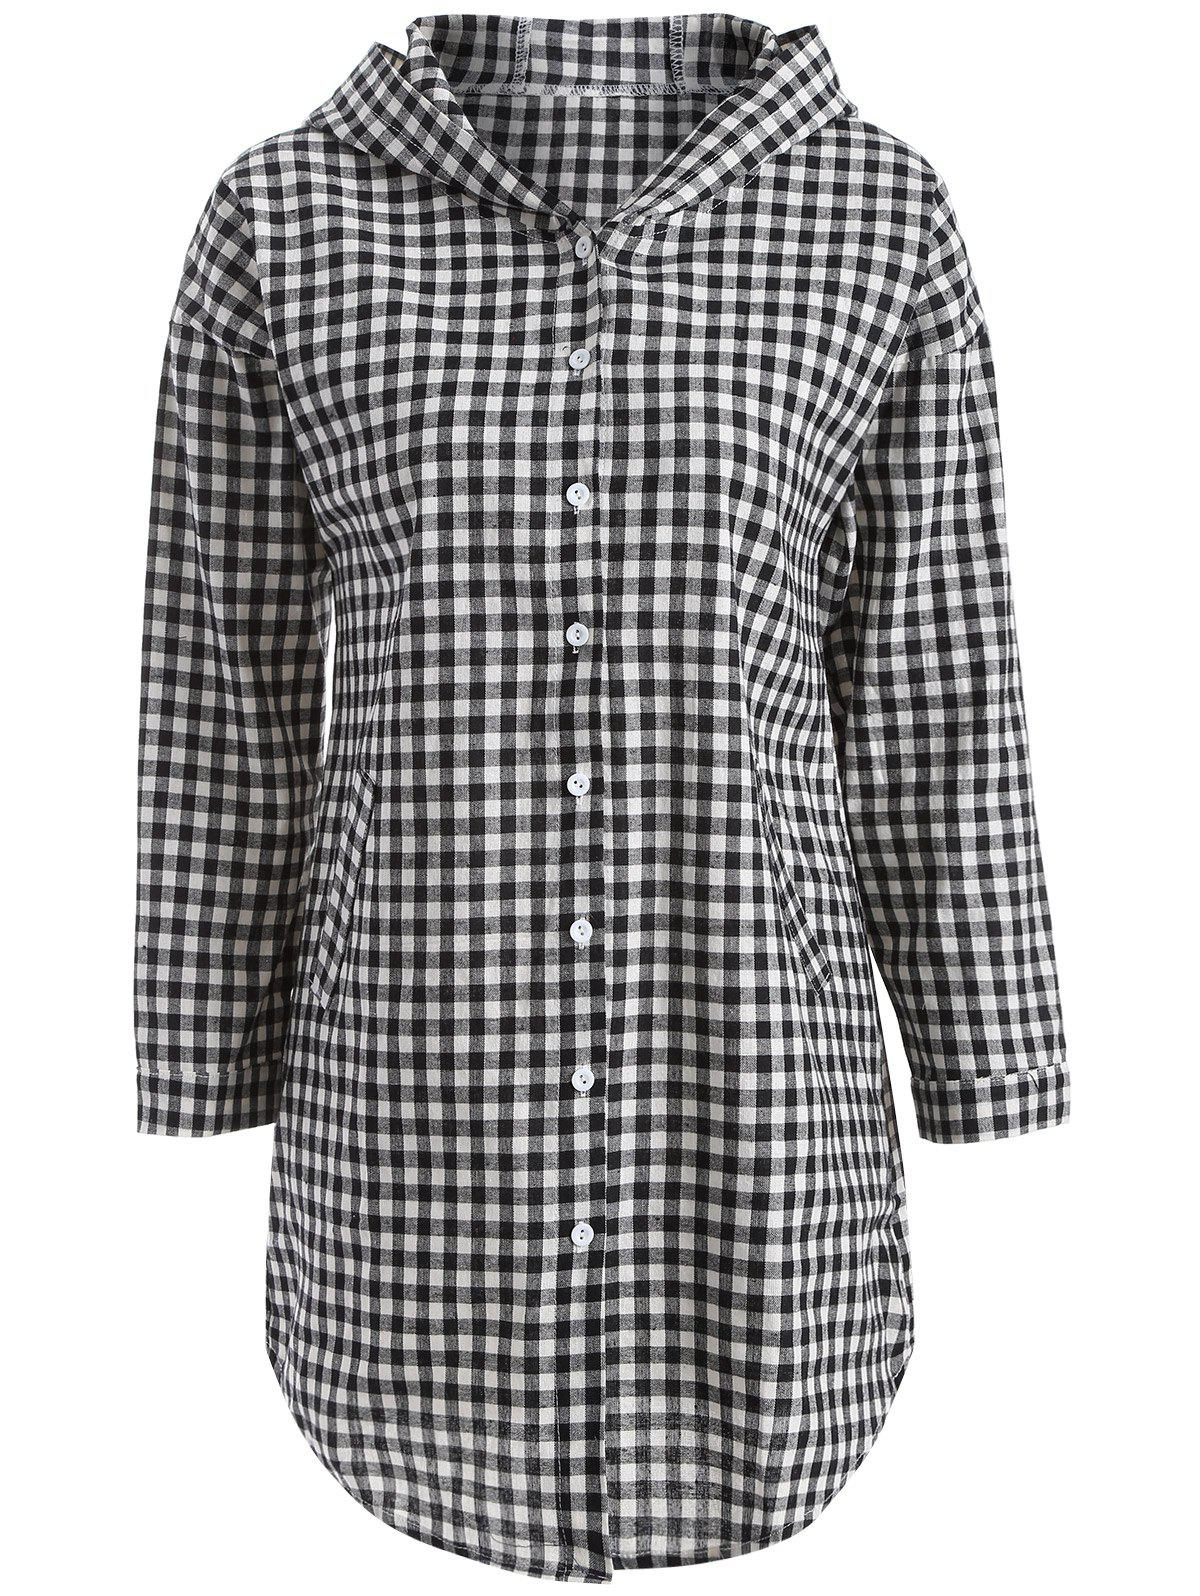 Hooded Button-Down Plaid BlouseWomen<br><br><br>Size: 2XL<br>Color: CHECKED